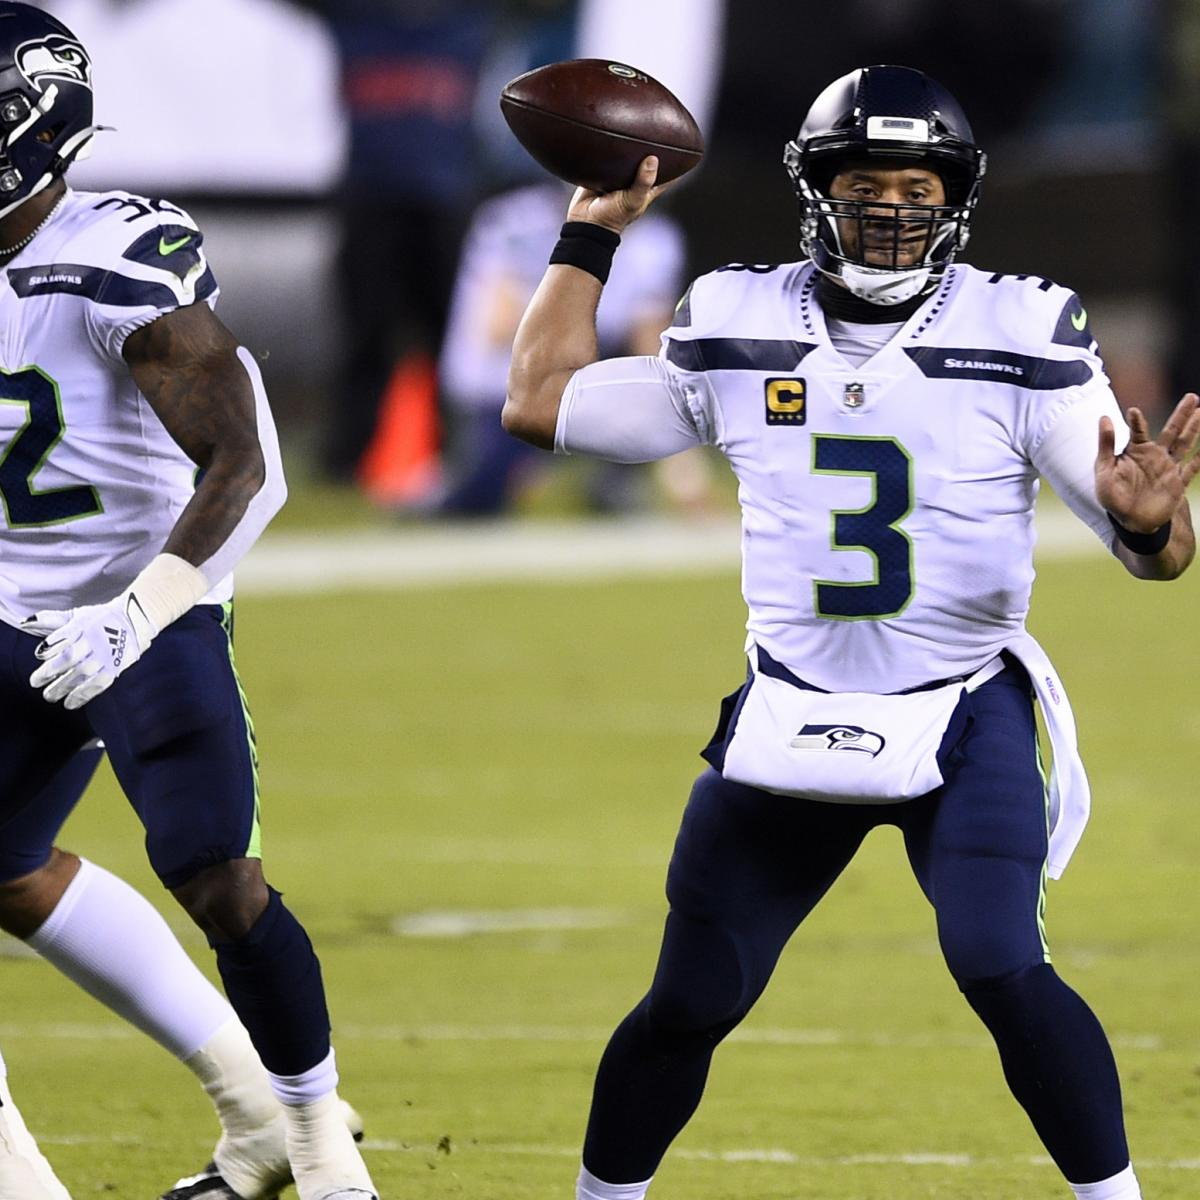 Keep Russ Cookin': Balanced Offense Not Necessary for Russell Wilson's Seahawks - Bleacher Report